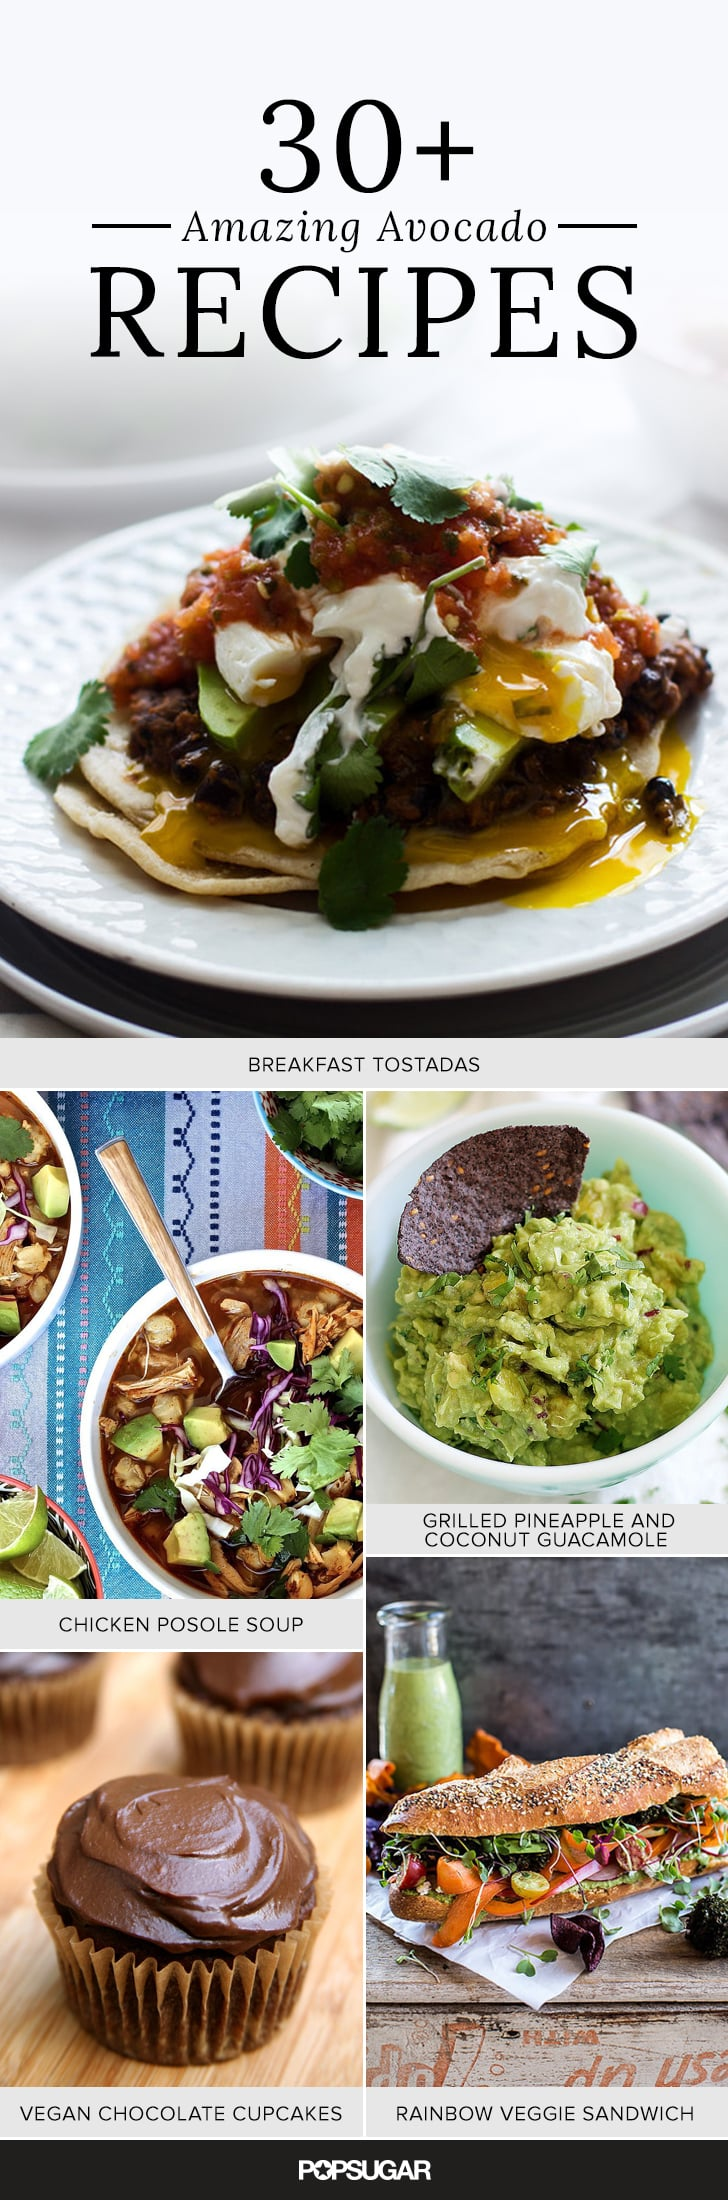 33 Amazing Avocado Recipes